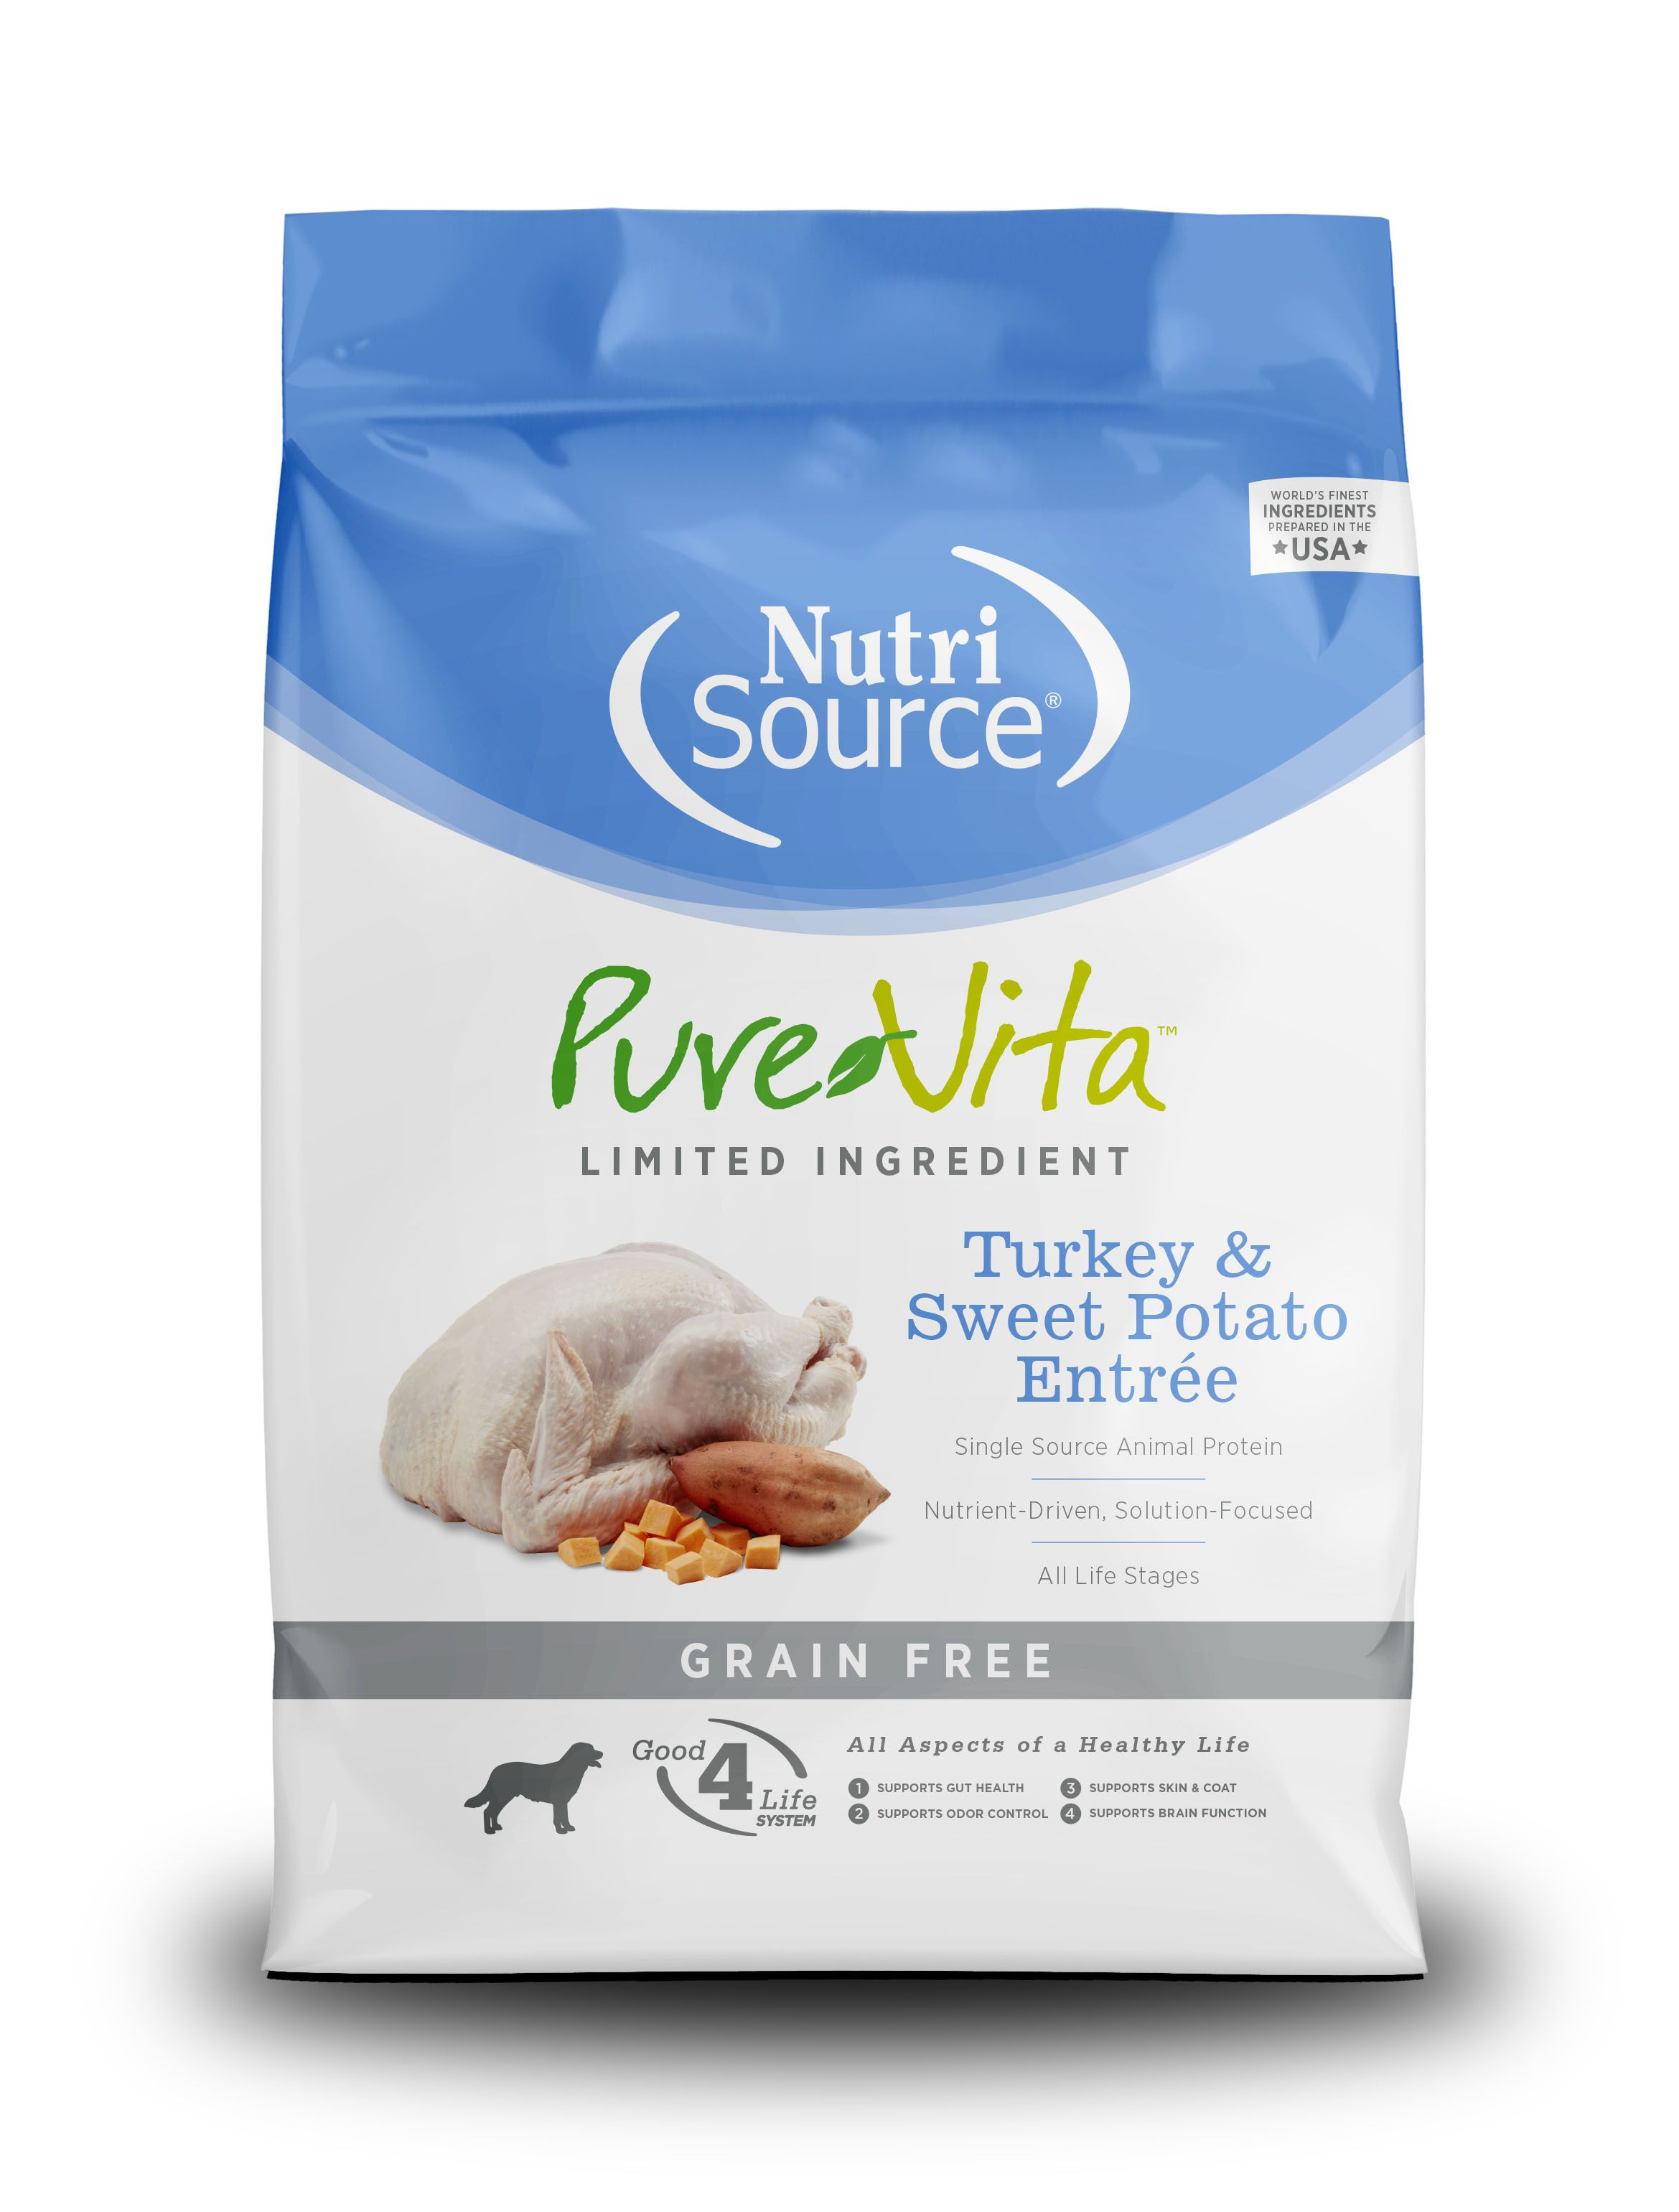 PureVita Grain Free Turkey & Sweet Potato Dry Dog Food Image